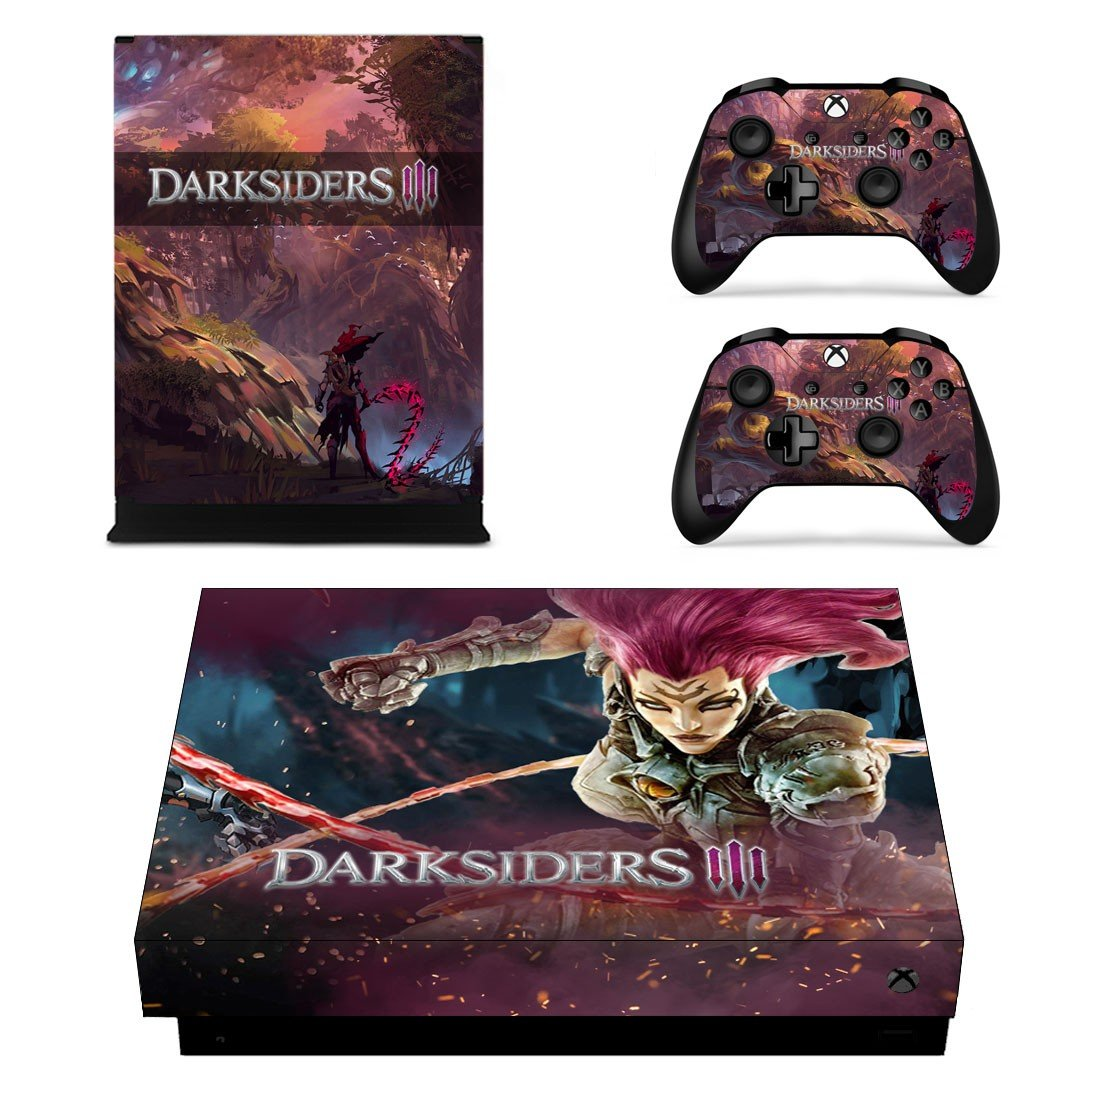 Darksiders 3 decal skin sticker for Xbox One X console and controllers